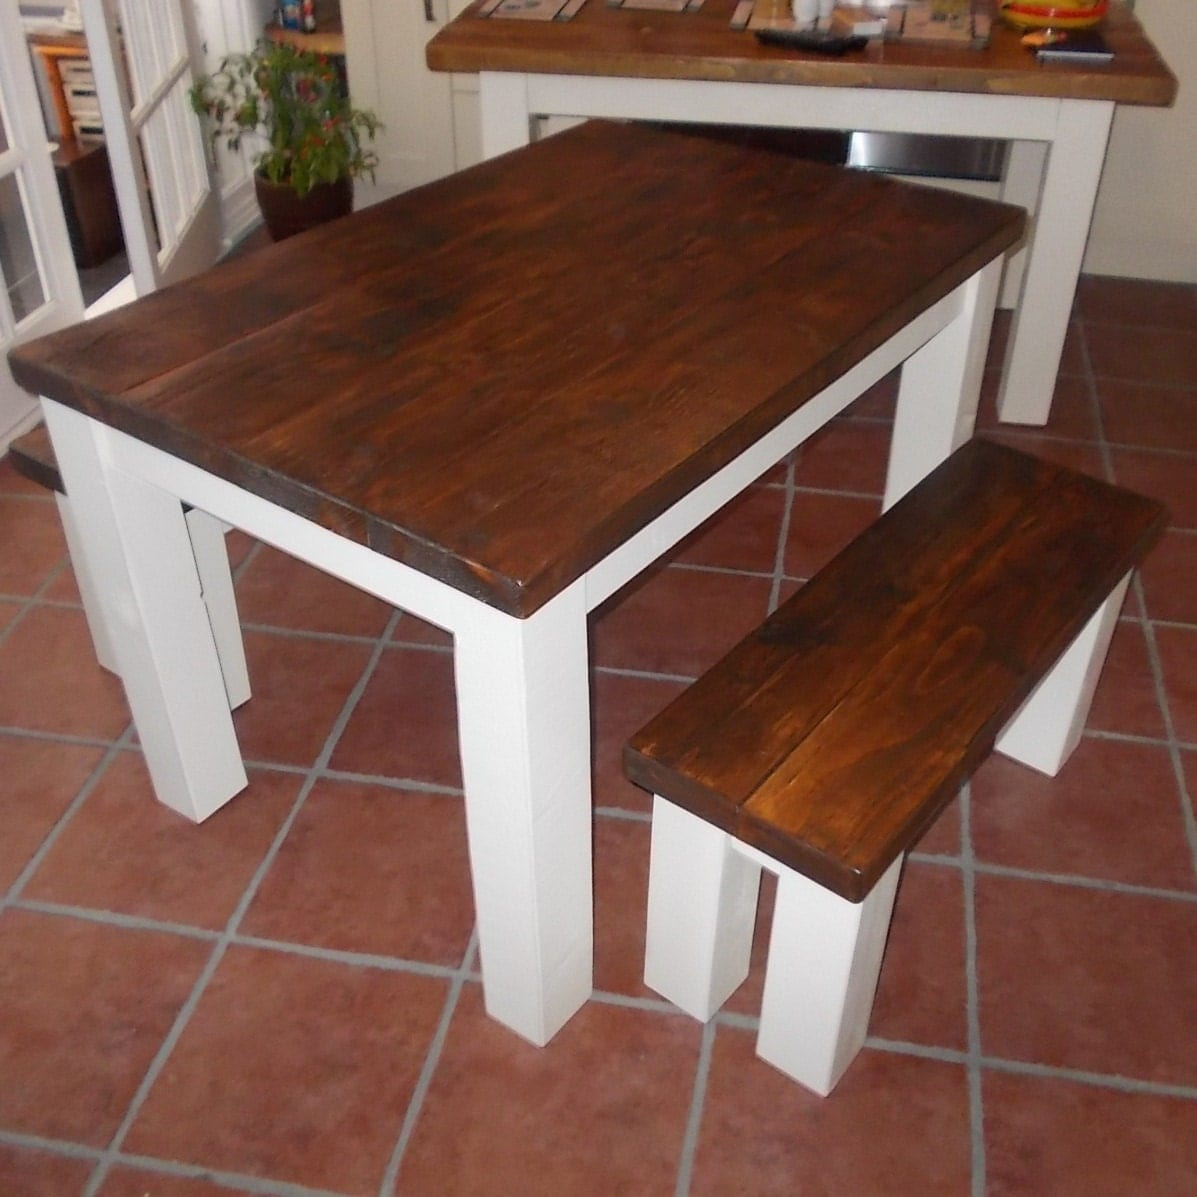 Kitchen Table With Bench Rustic Kitchen Tables And Table: New Handmade Rustic Kitchen Table & Bench Set 009